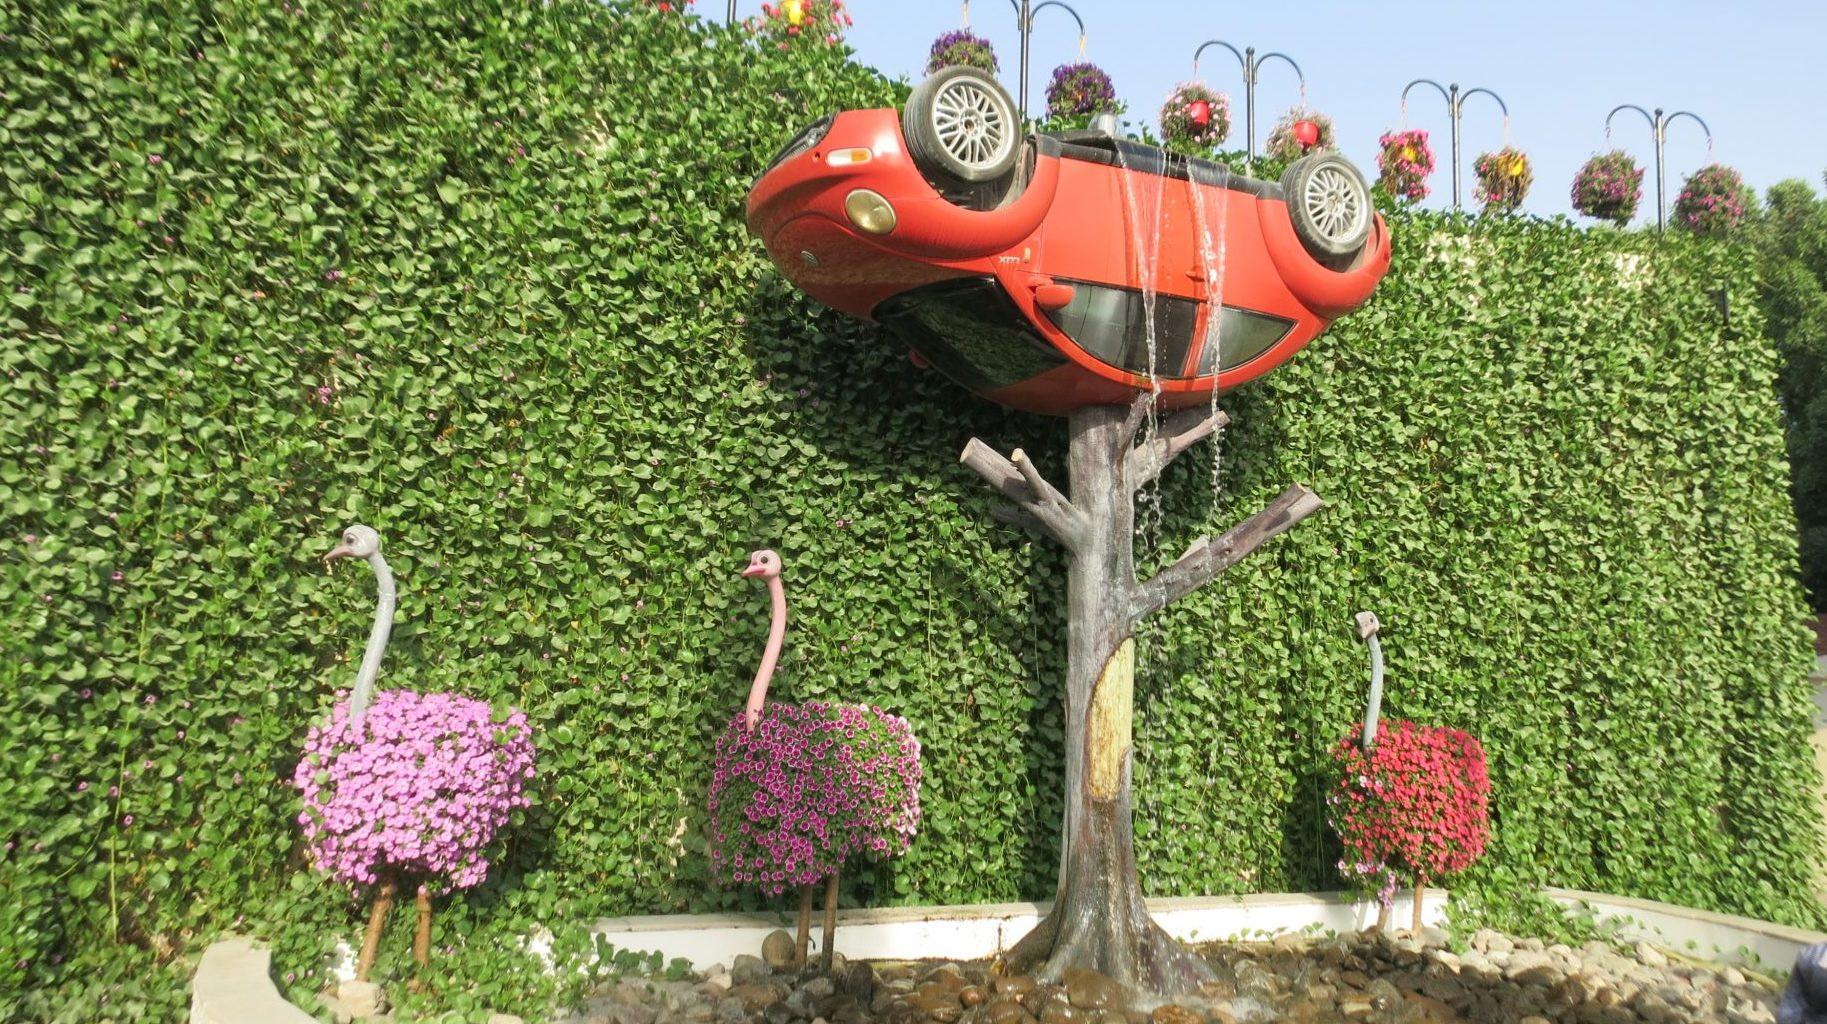 An upside-down VW beetle fountain, with three ostriches, at the Dubai Miracle Garden